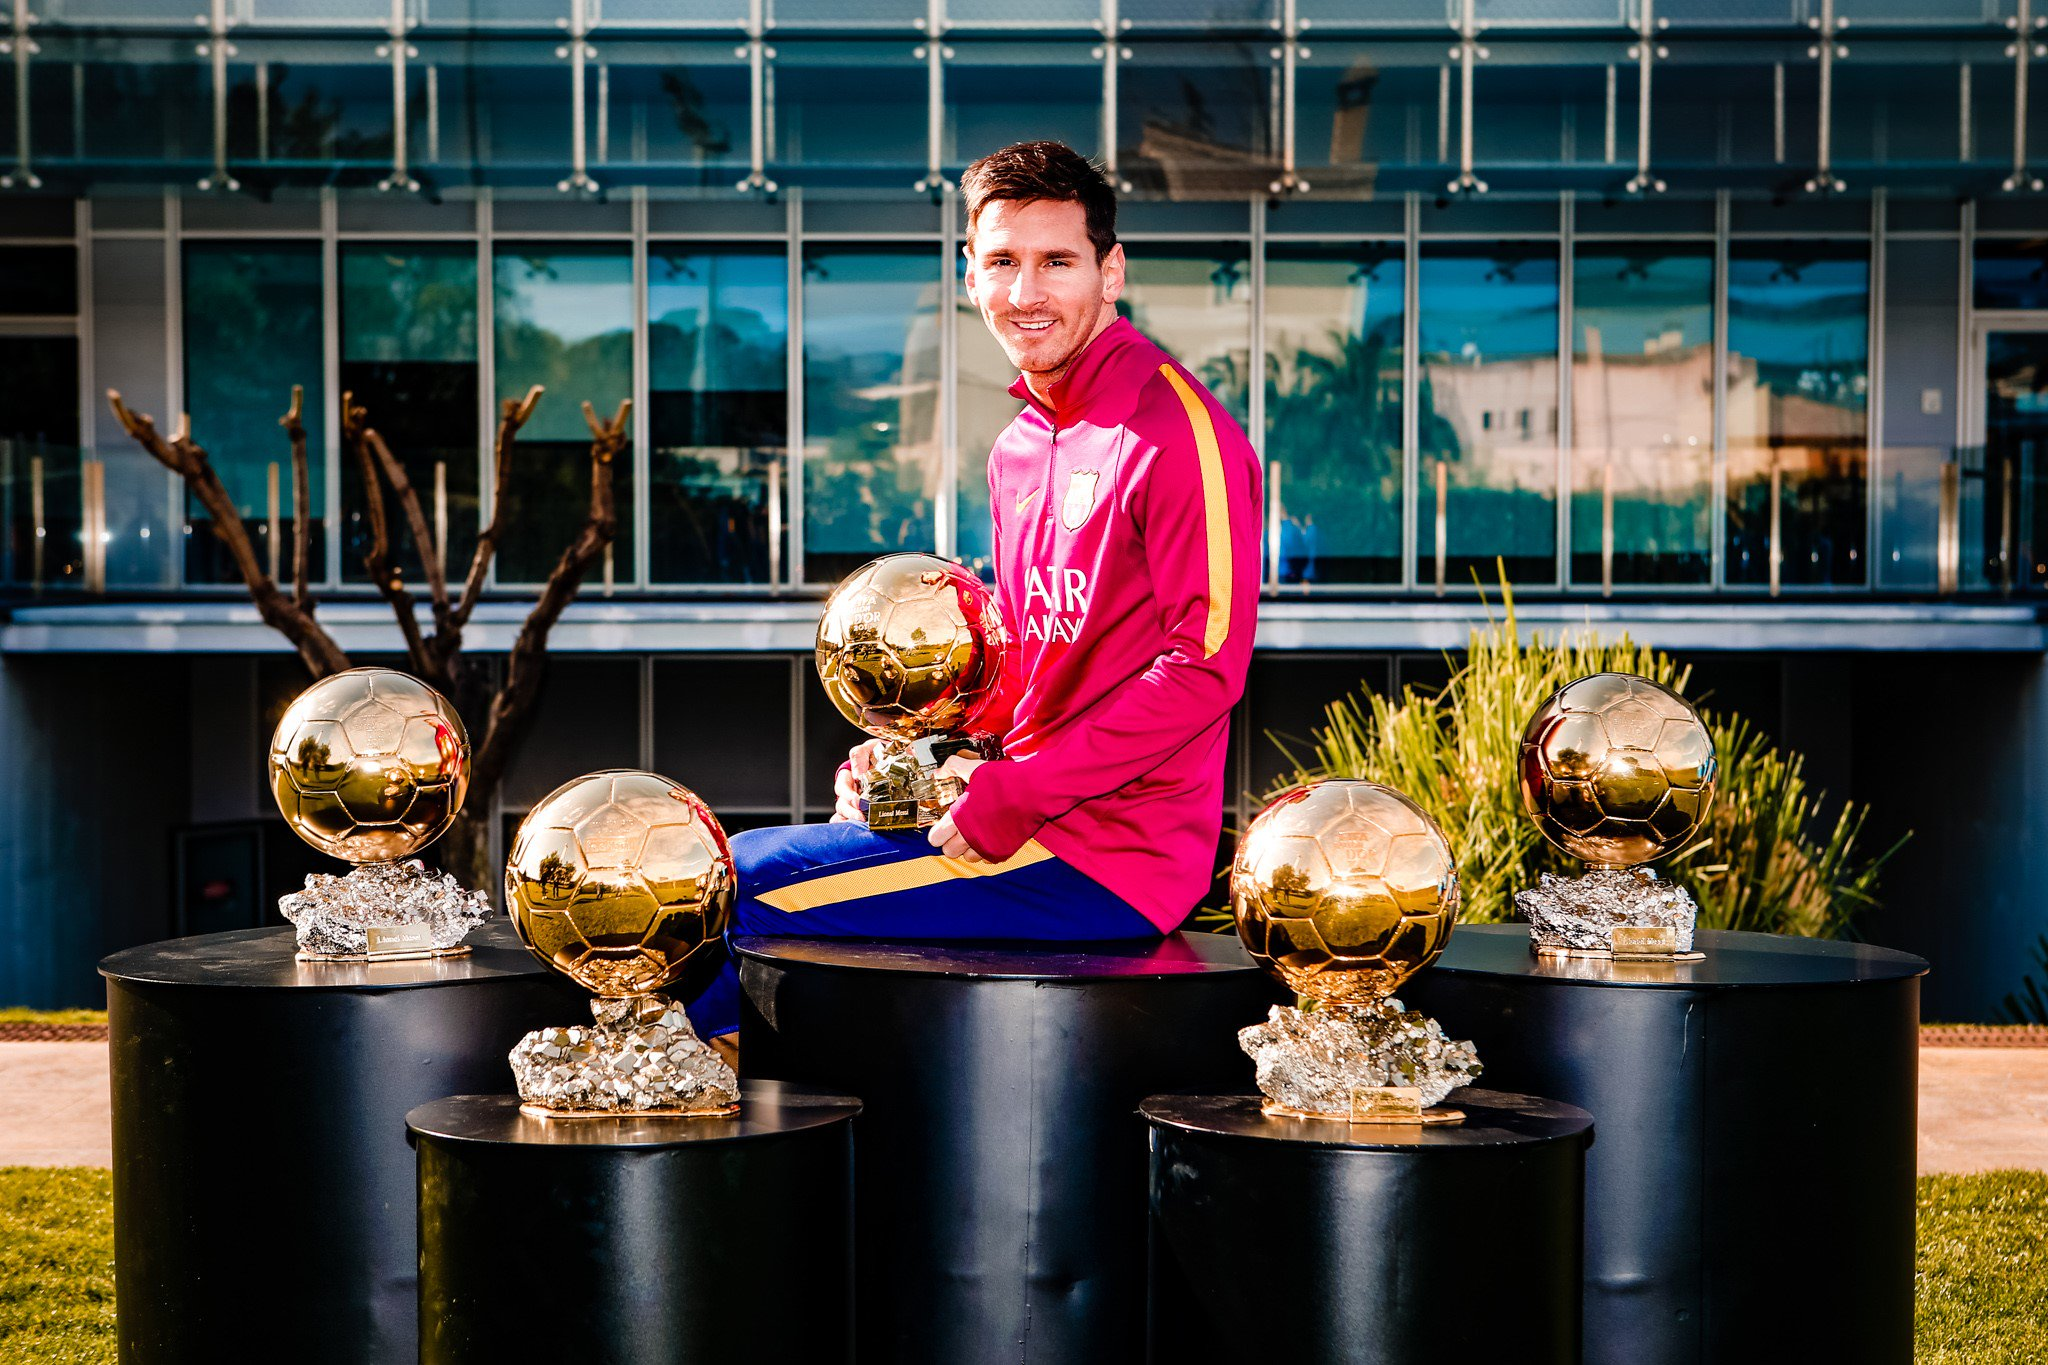 #OnThisDay Jan. 11, 2016 �� Messi becomes the first player to win 5 Ballon d'Or awards �� https://t.co/G1i9hQVHMi